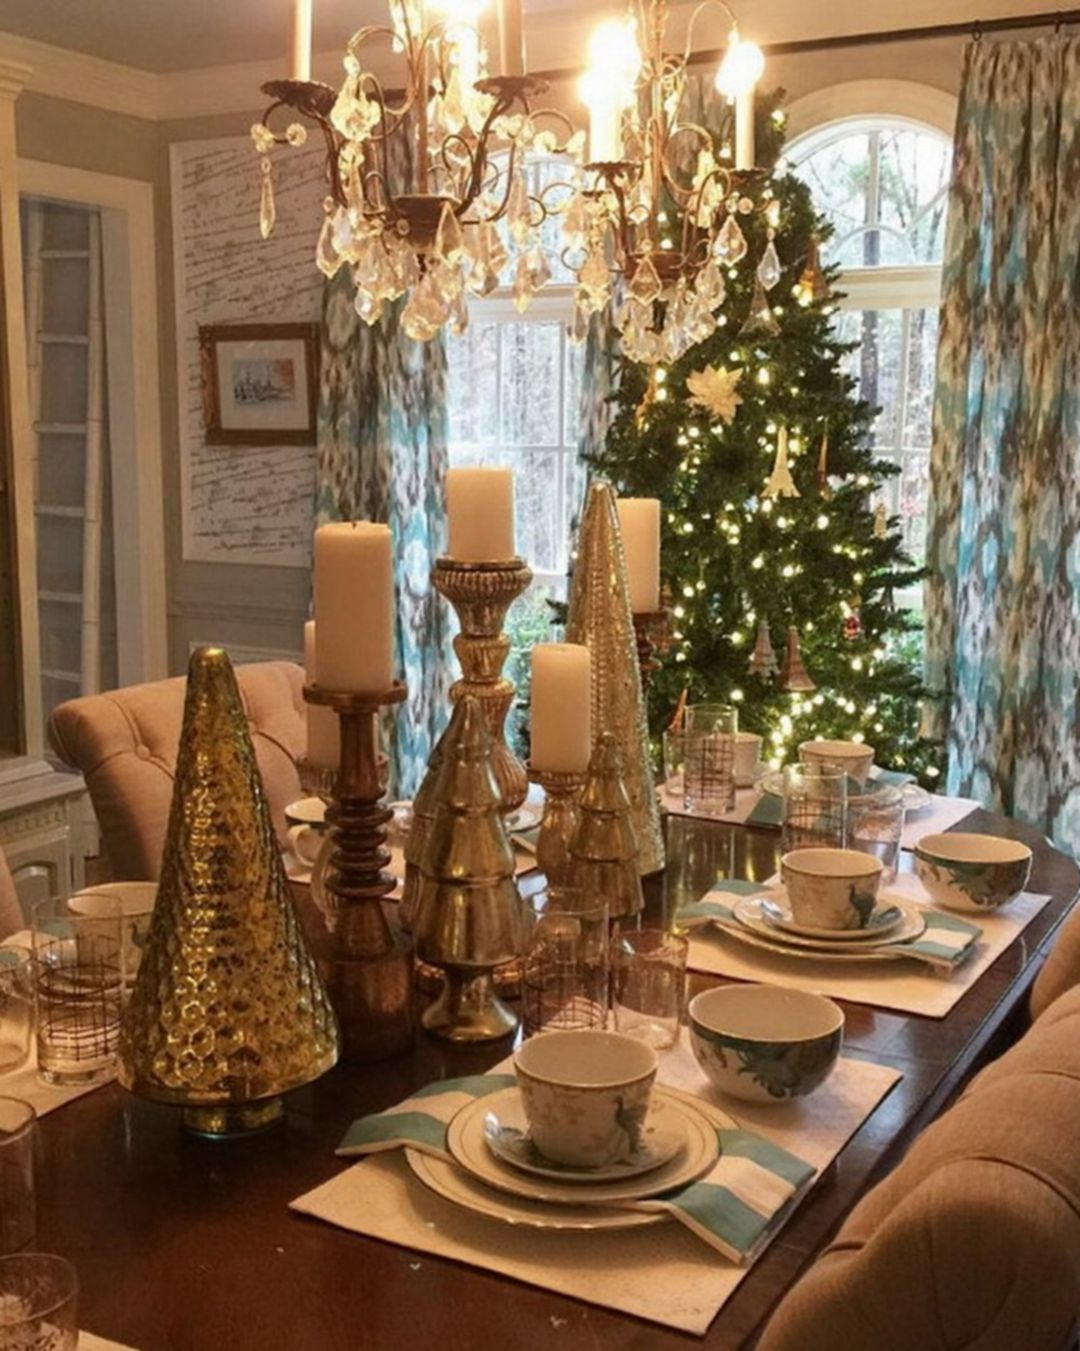 20 Chic Blue Christmas Dining Room Ideas For Your Inspiration Christmas Dining Table Decor Christmas Dining Room Christmas Dining Table